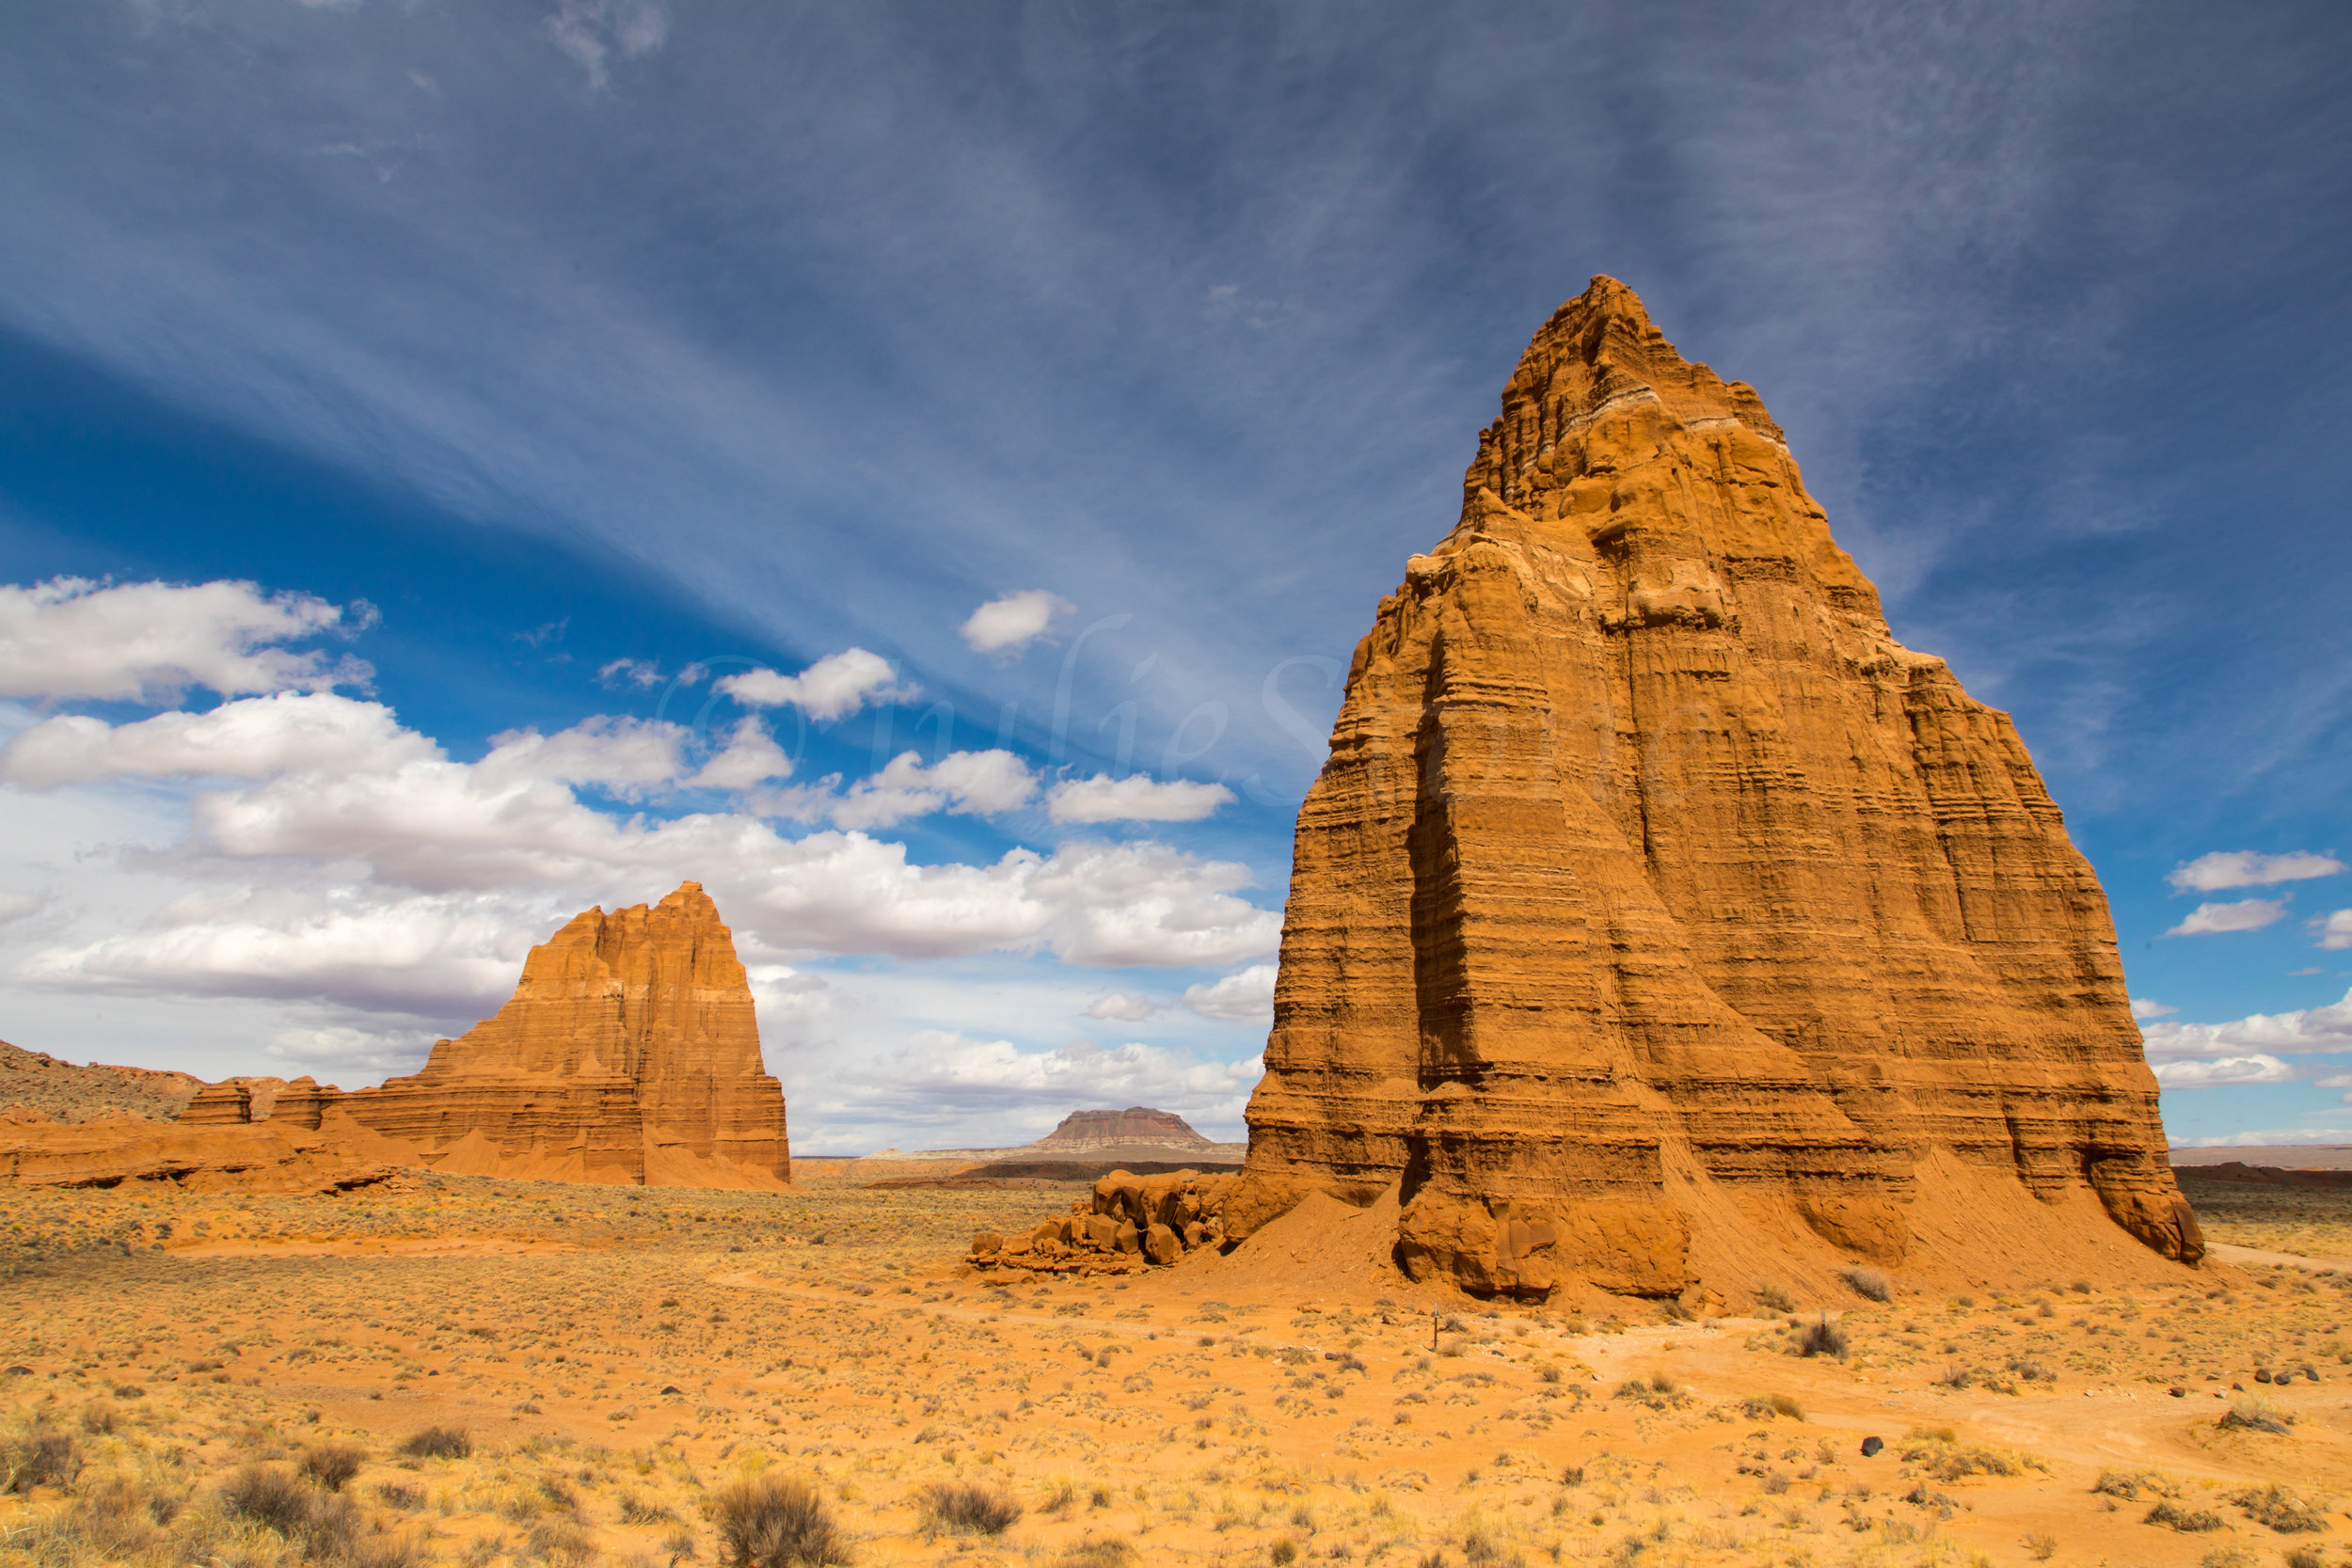 Capitol Reef National Park, Image # 2079